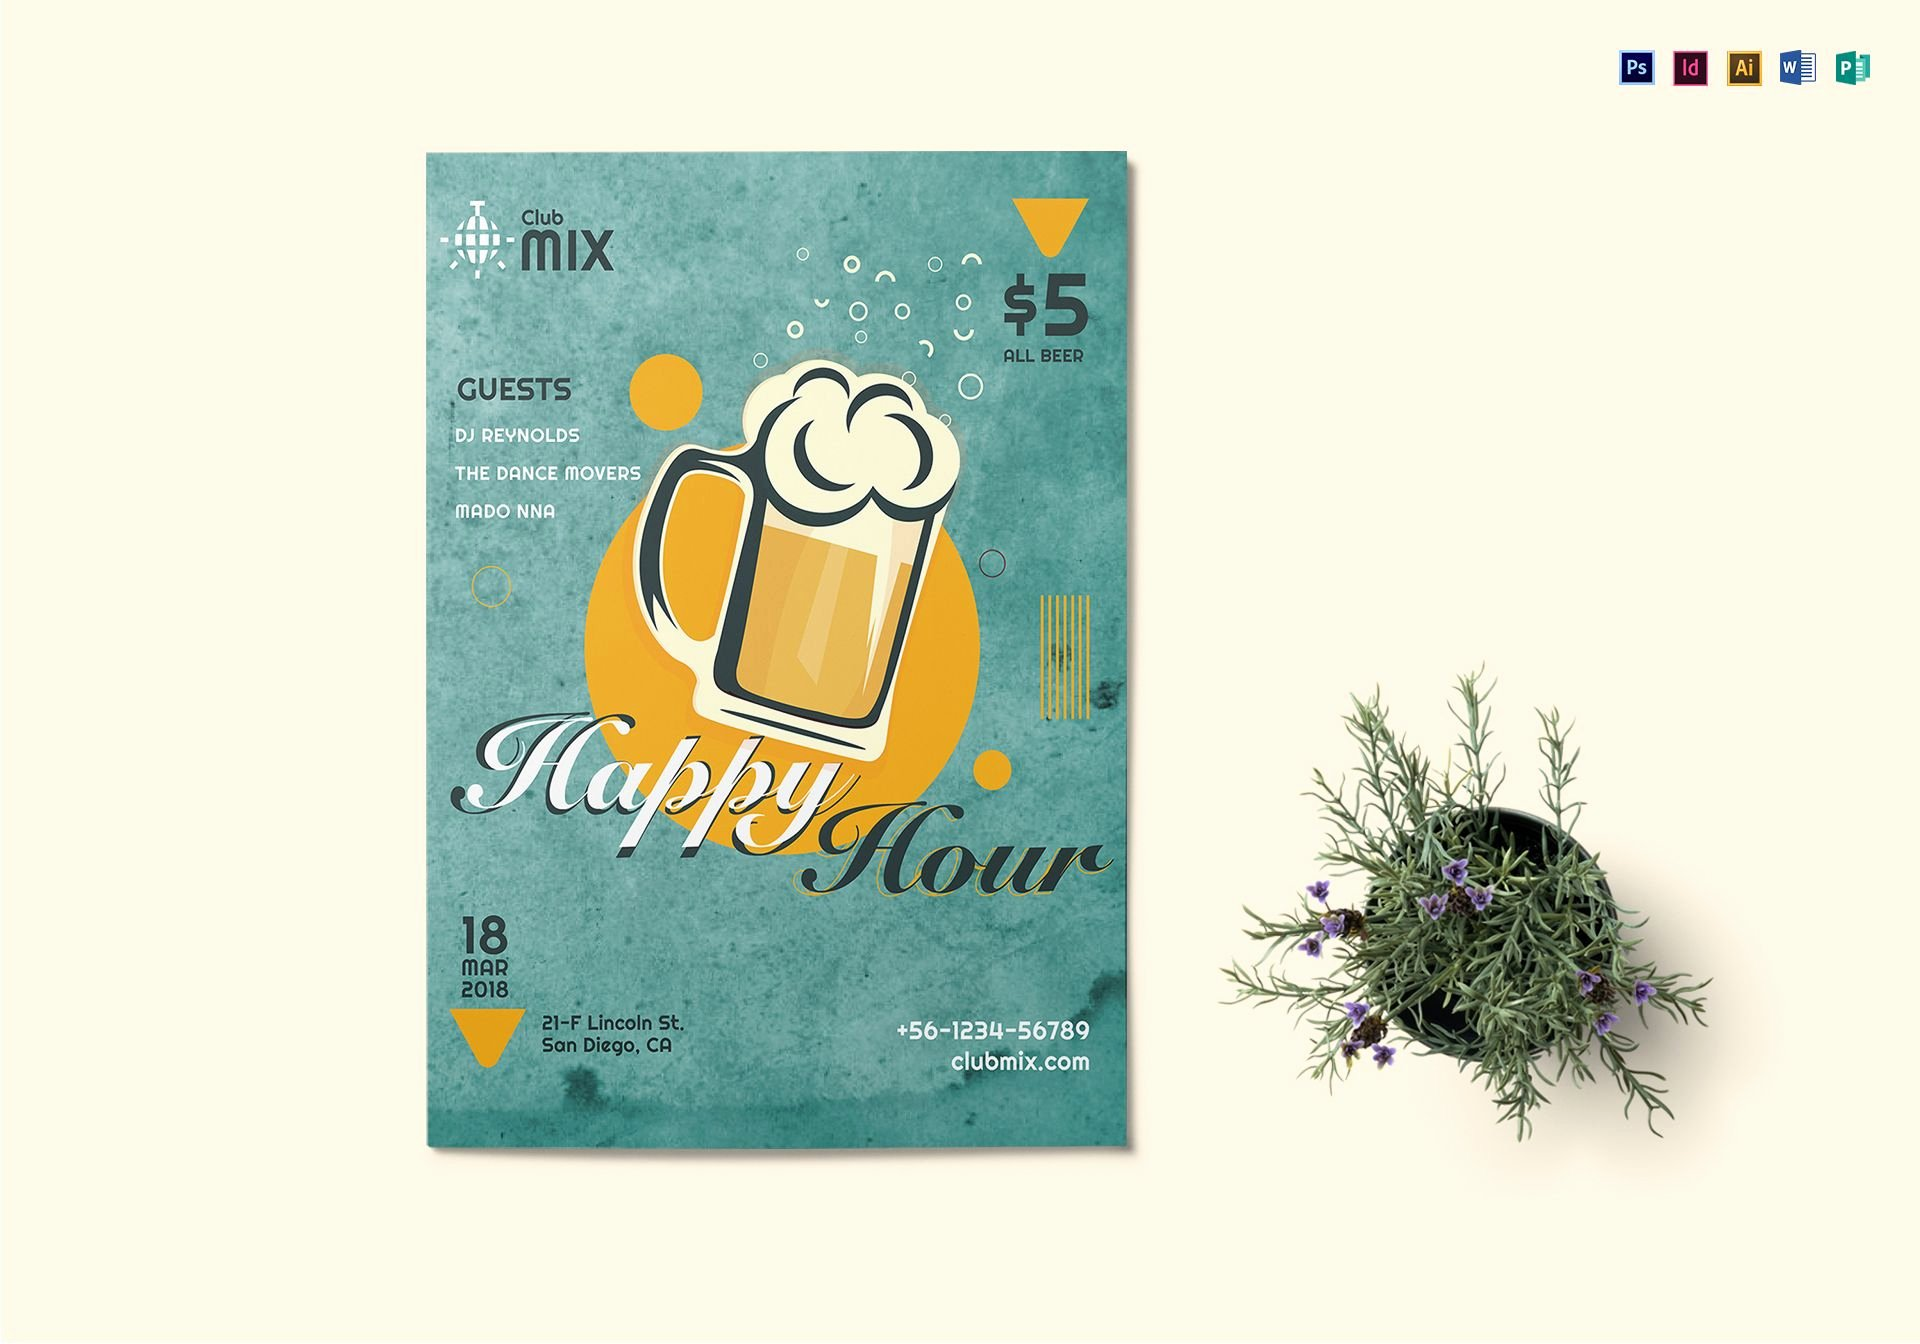 Happy Hour Flyer Template New Vintage Happy Hour Flyer Design Template In Psd Word Publisher Illustrator Indesign